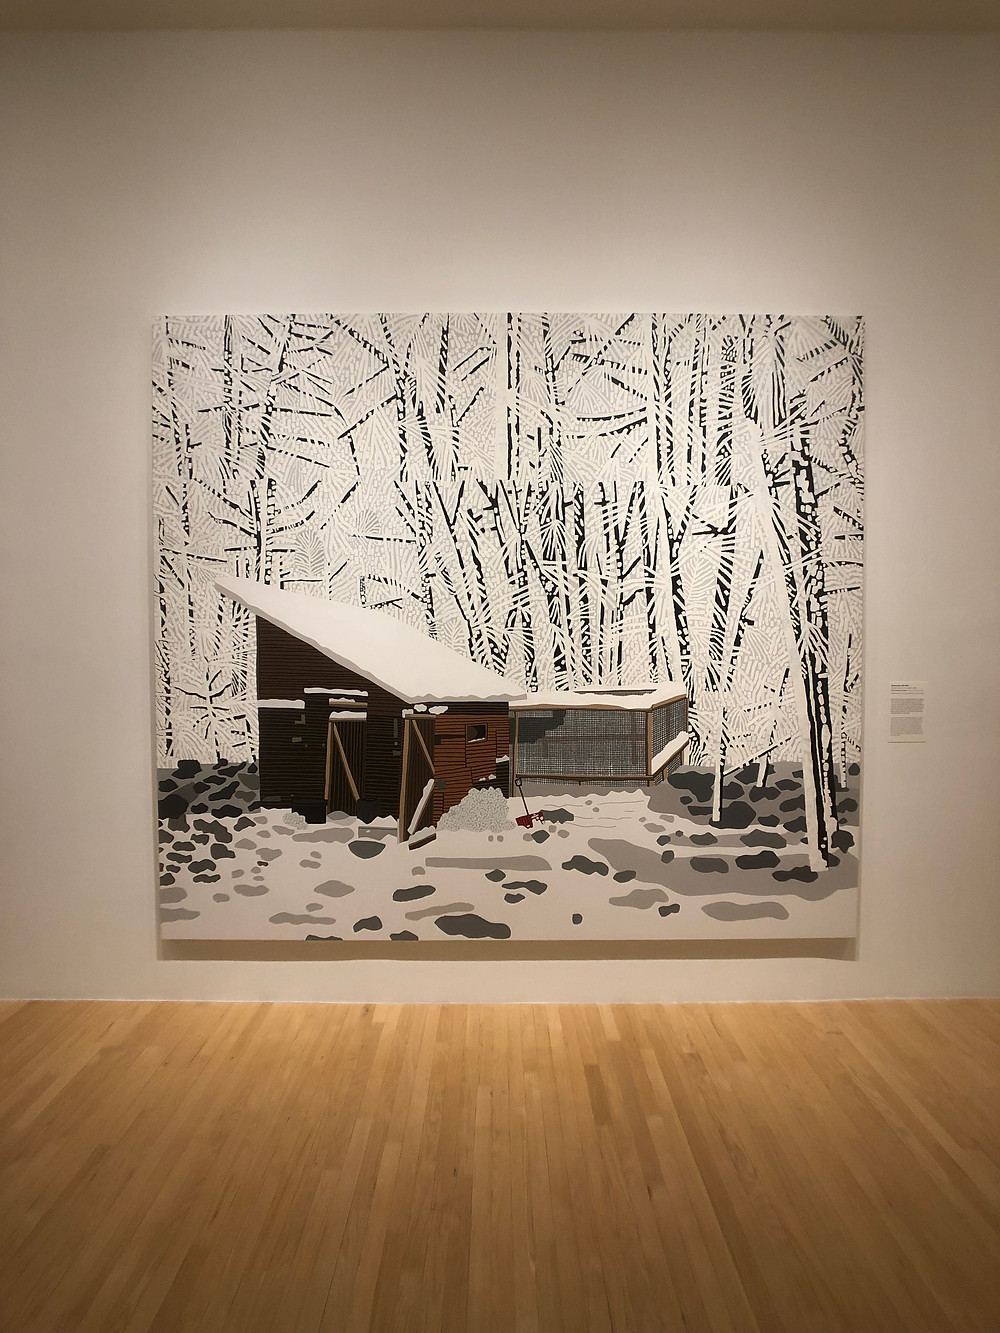 Barn in snowy woods by painter Jonas Wood at the Dallas Museum of Art.